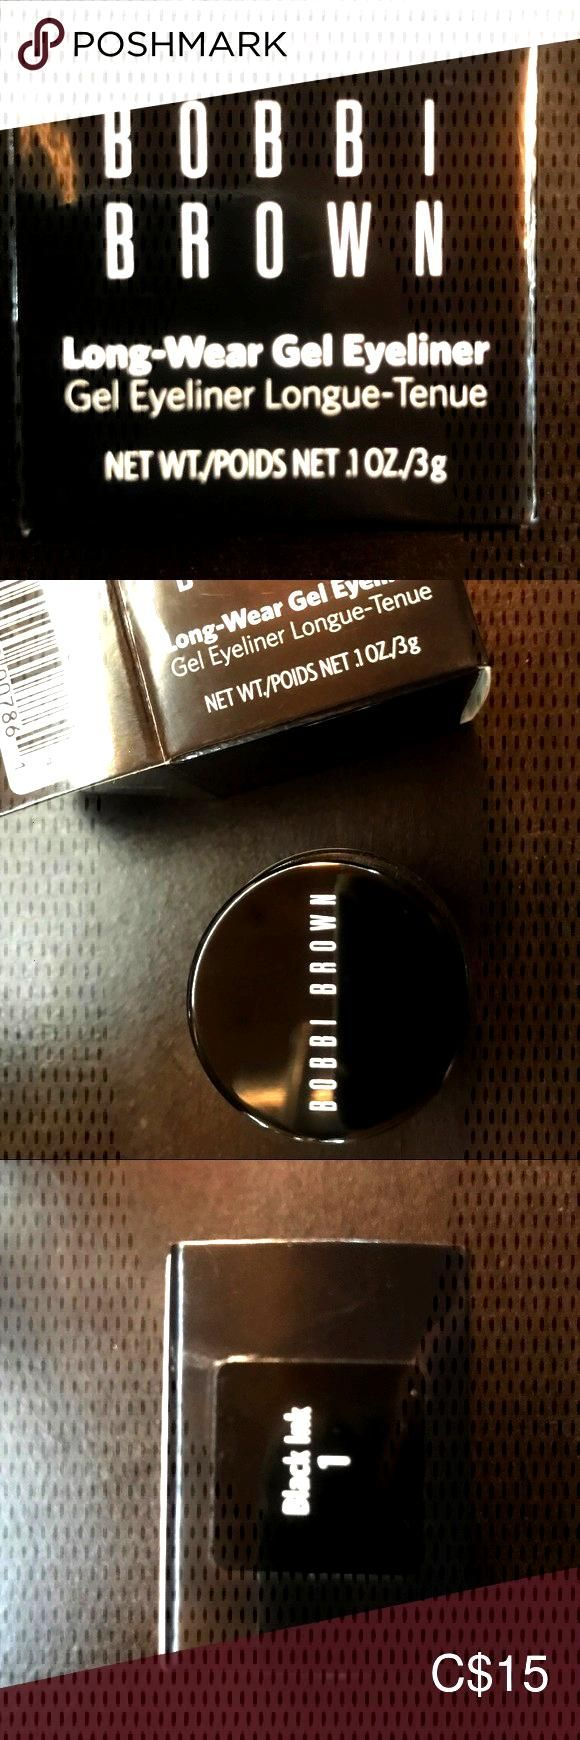 Brown long wear gel liner. Brand new! I had bought a back up of this, but no longer use gel liner.